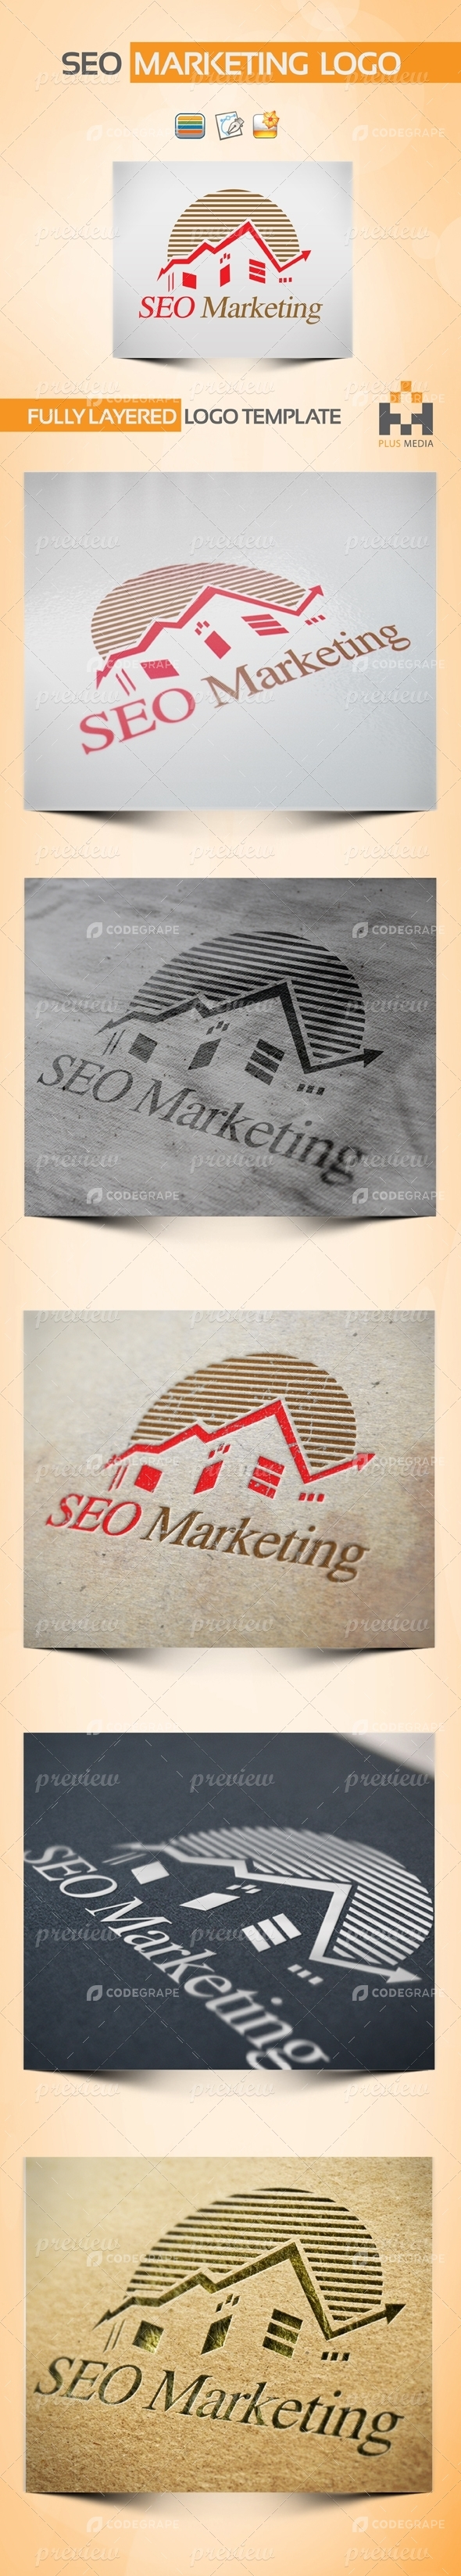 SEO Marketing Logotype